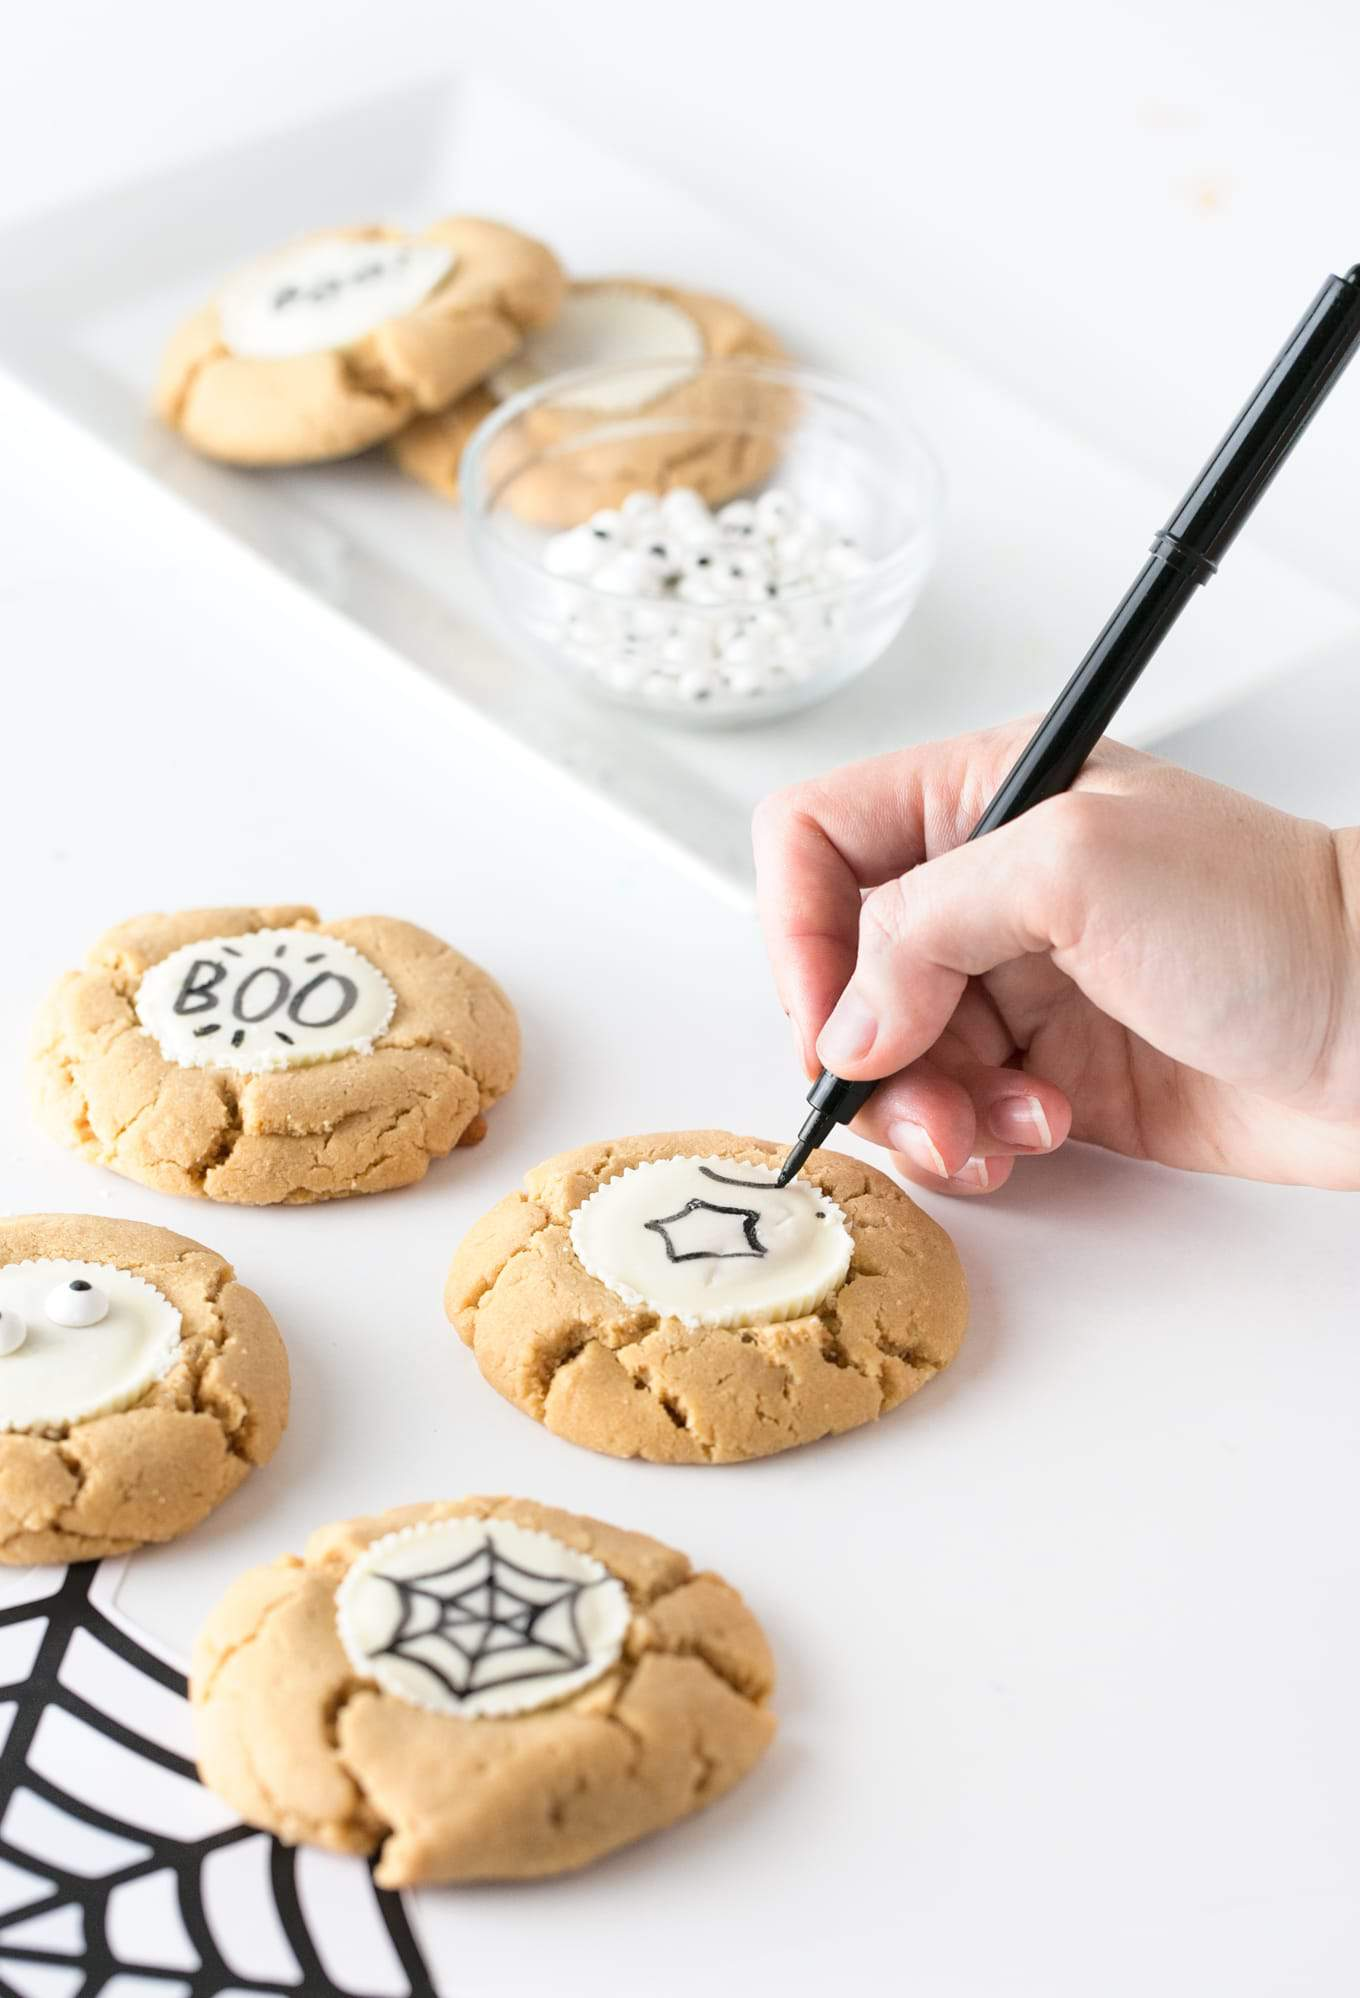 """Forget the fancy decorating and grab the edible food pen to draw-your-own easy Halloween cookies! Using a traditional peanut butter cup as the """"canvas"""", you can customize with your own icons, faces or spooktacular phrases! #Halloween 